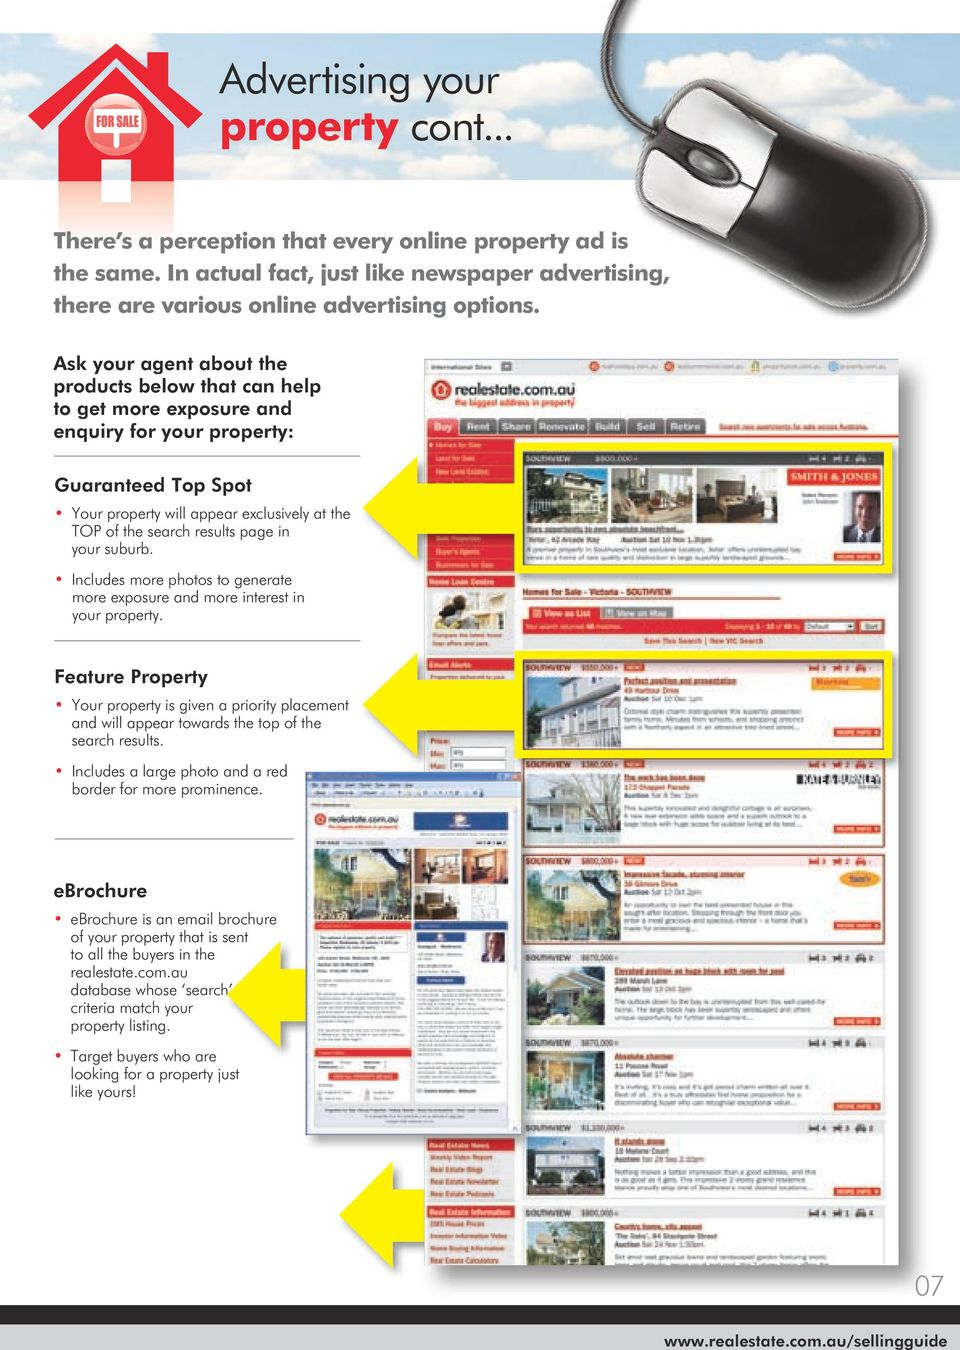 page in your suburb. Includes more photos to generate more exposure and more interest in your property.